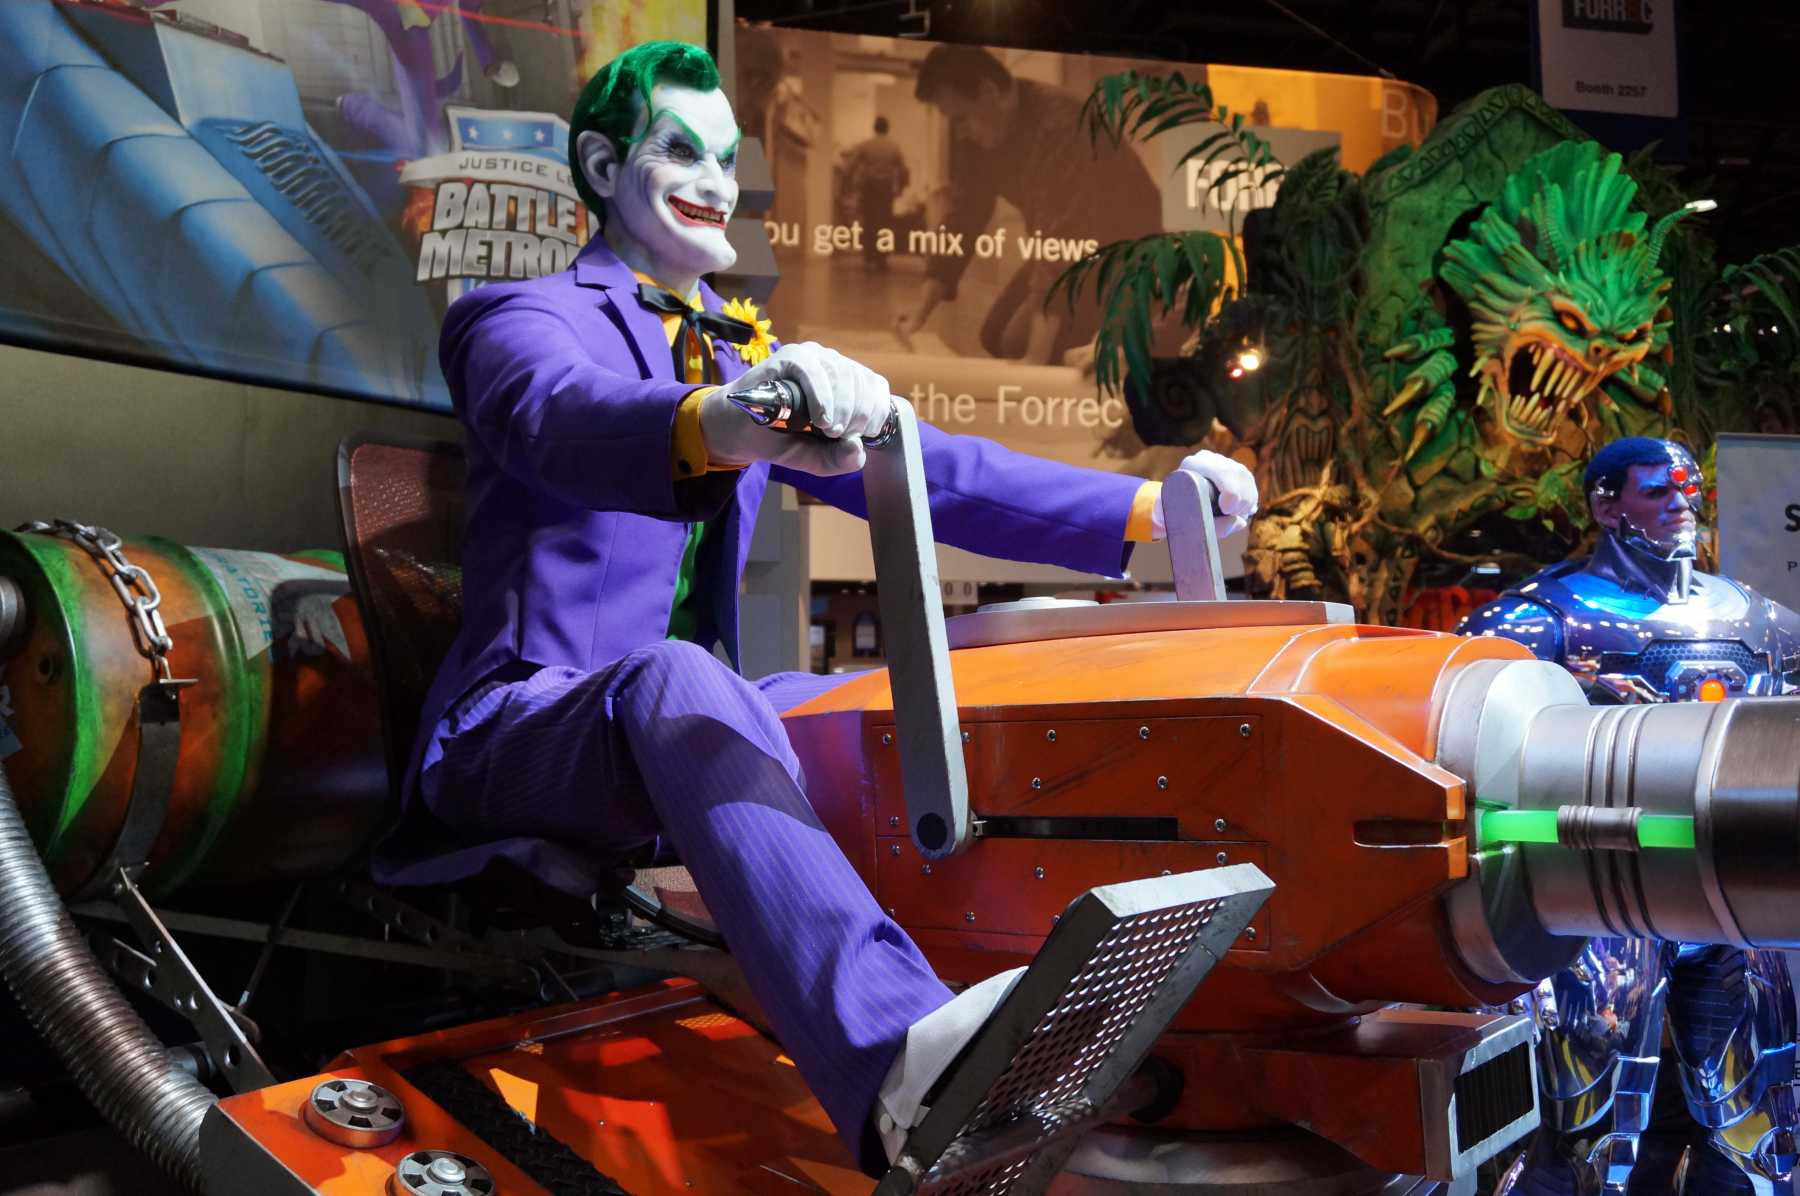 Joker Takes On The Justice League At Six Flags' Battle For Metropolis | Six Flags